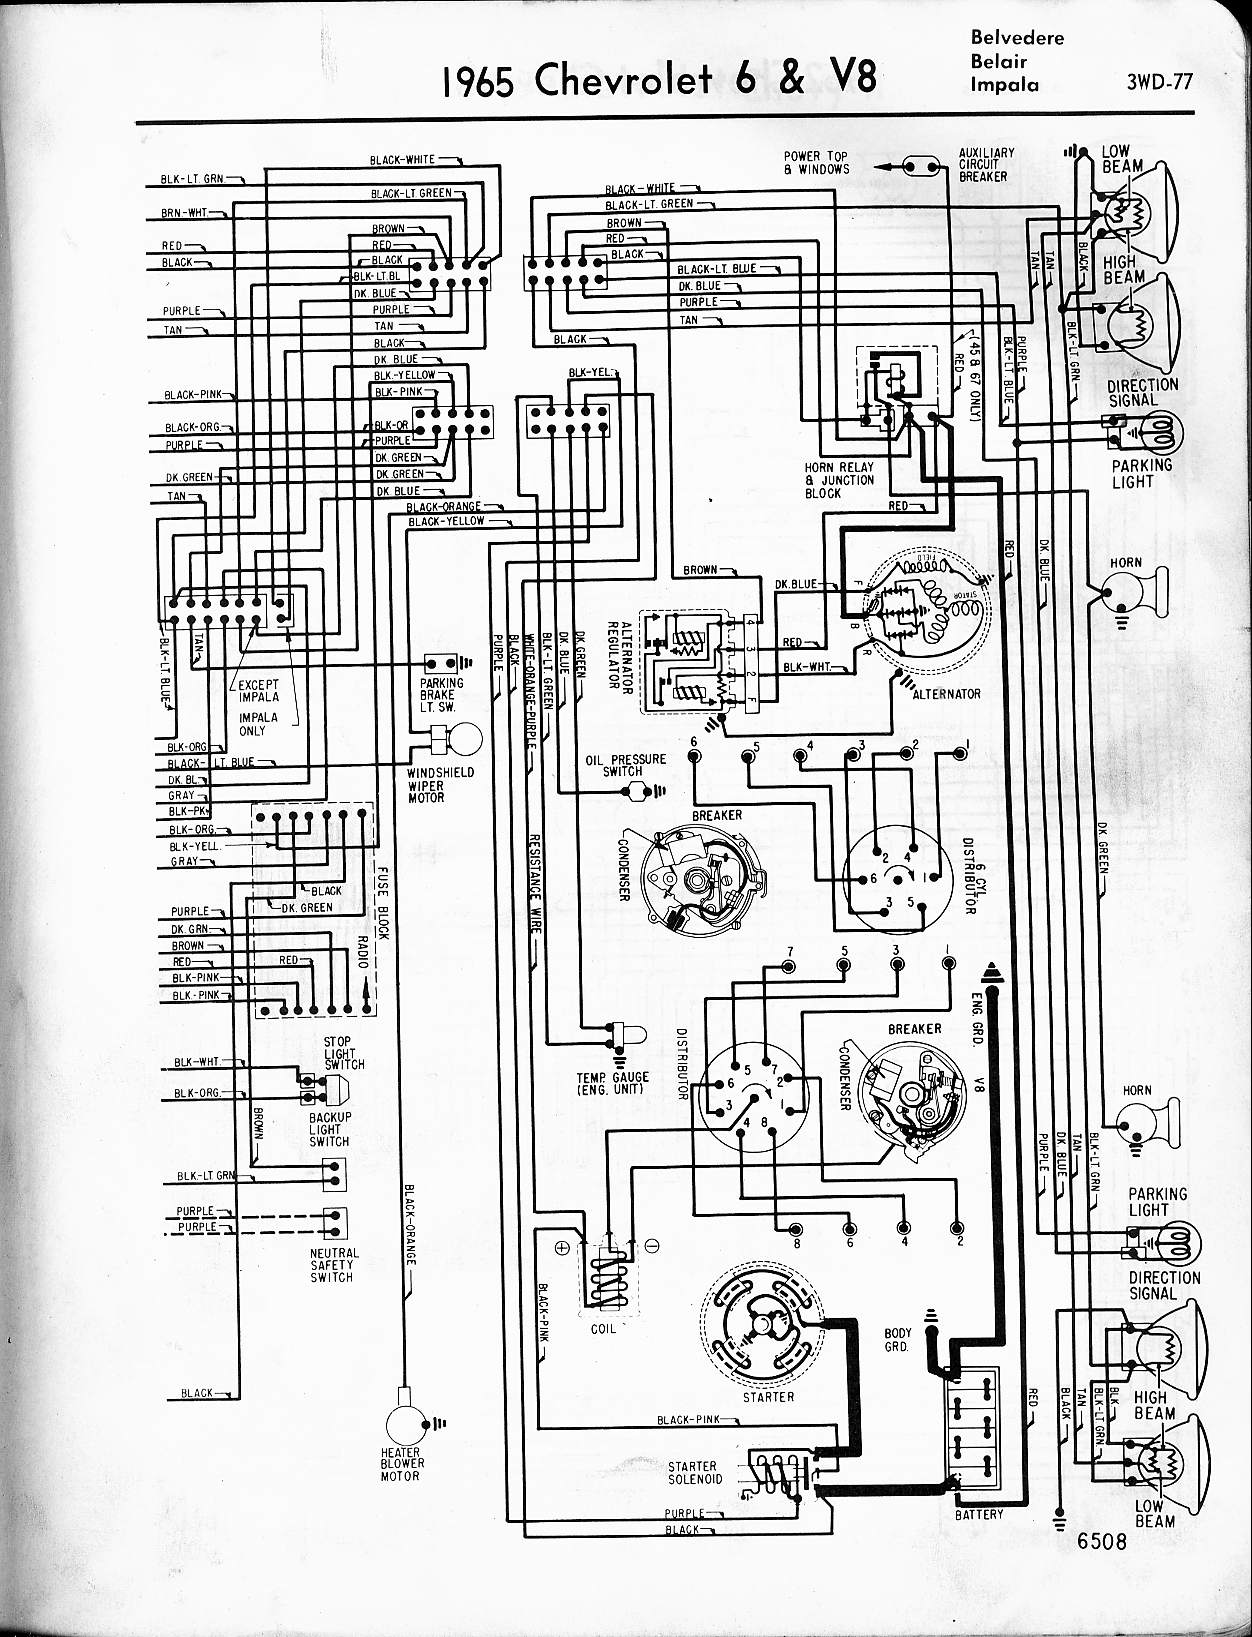 1962 Impala Voltage Regulator Wiring Diagram 44 Ford F550 For Alt Mwirechev65 3wd 077 Electrical Problems Chevytalk Free Restoration And Repair Help Chevy At